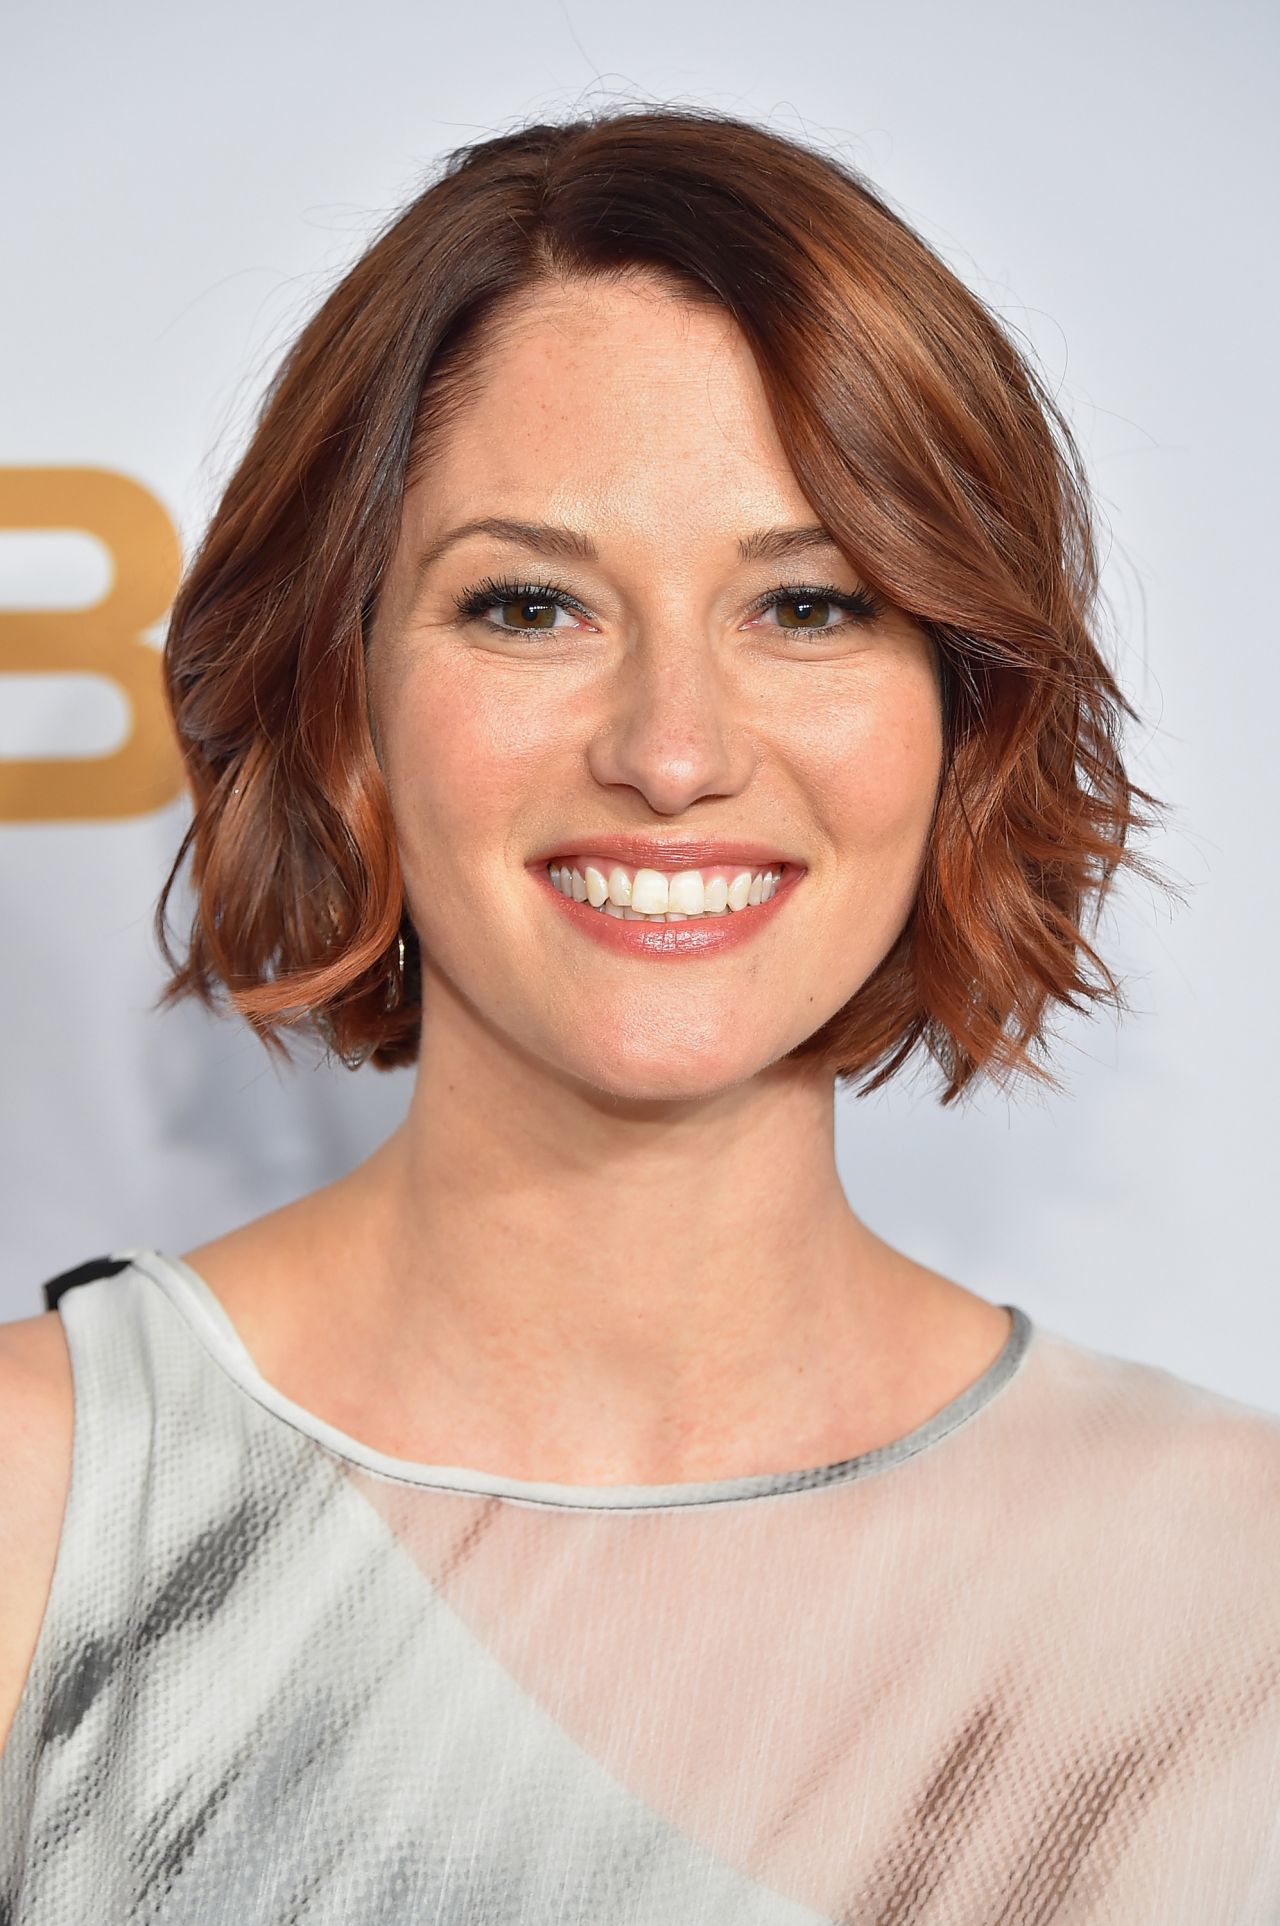 Playing Doctor: A House Call From Chyler Leigh of Grey's Anatomy ...